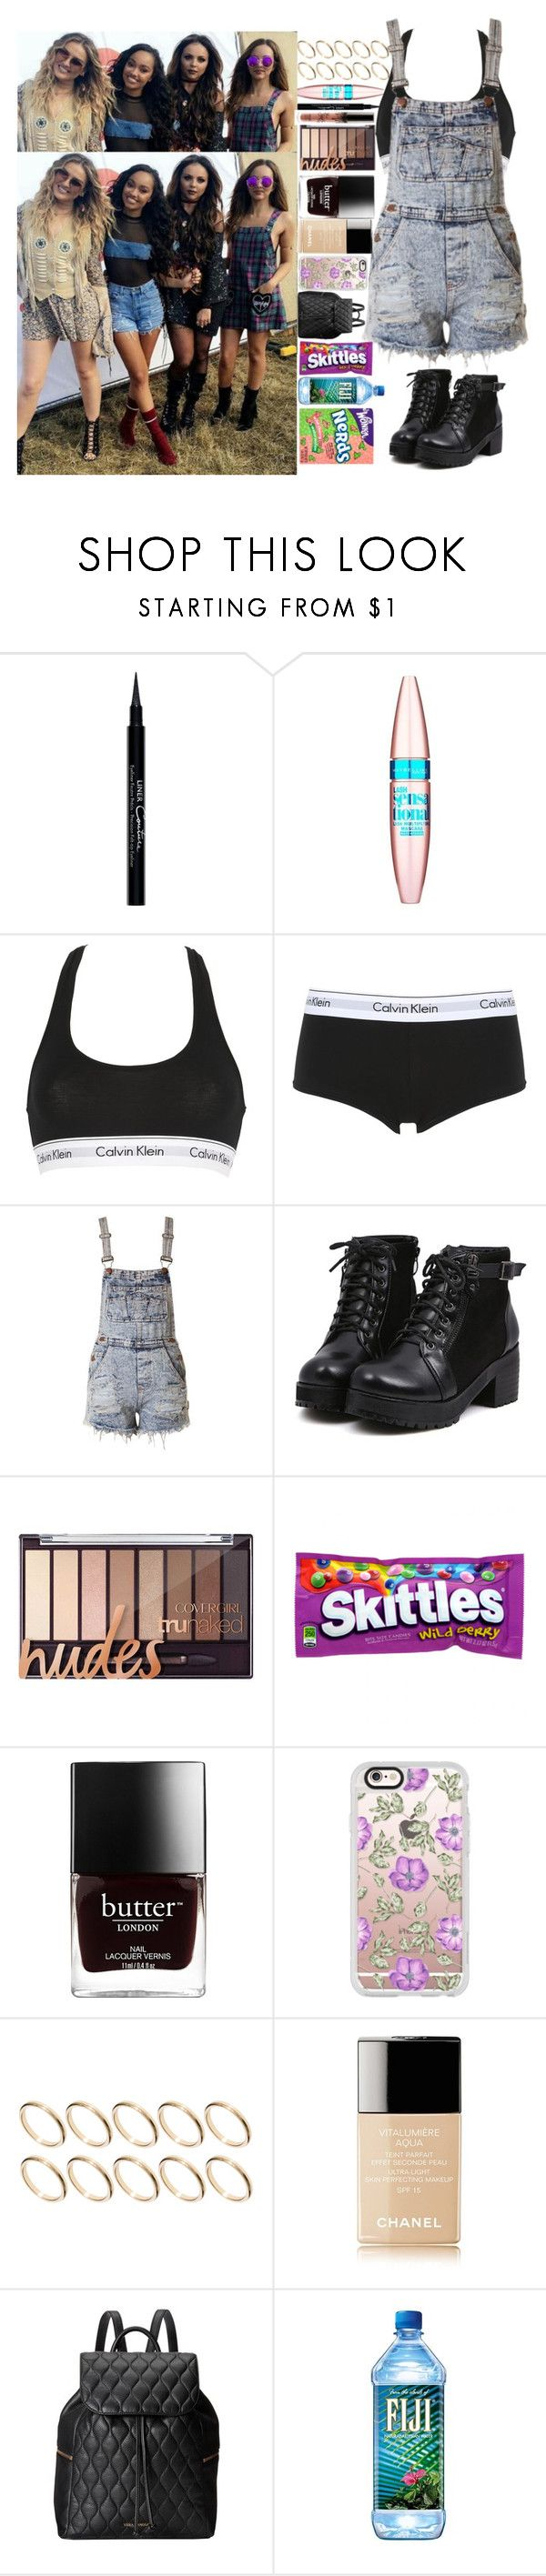 """V Fest with Little Mix"" by kellymartinezx ❤ liked on Polyvore featuring Givenchy, Maybelline, Calvin Klein Underwear, Casetify, ASOS, Chanel, Vera Bradley and River Island"